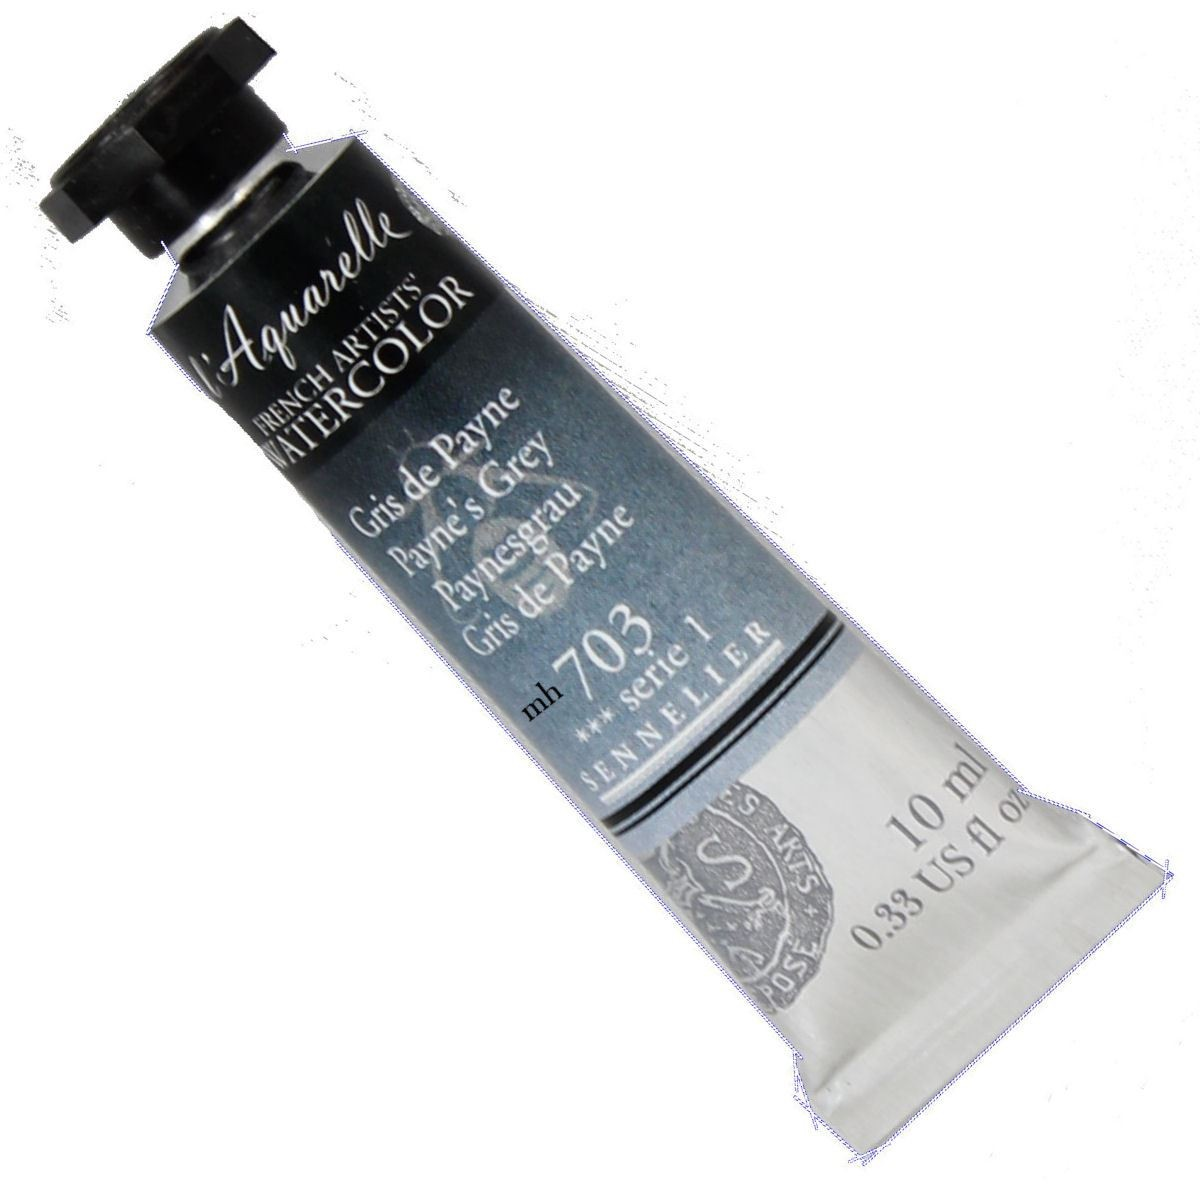 Sennelier artists watercolour paint 10ml tubes stand.